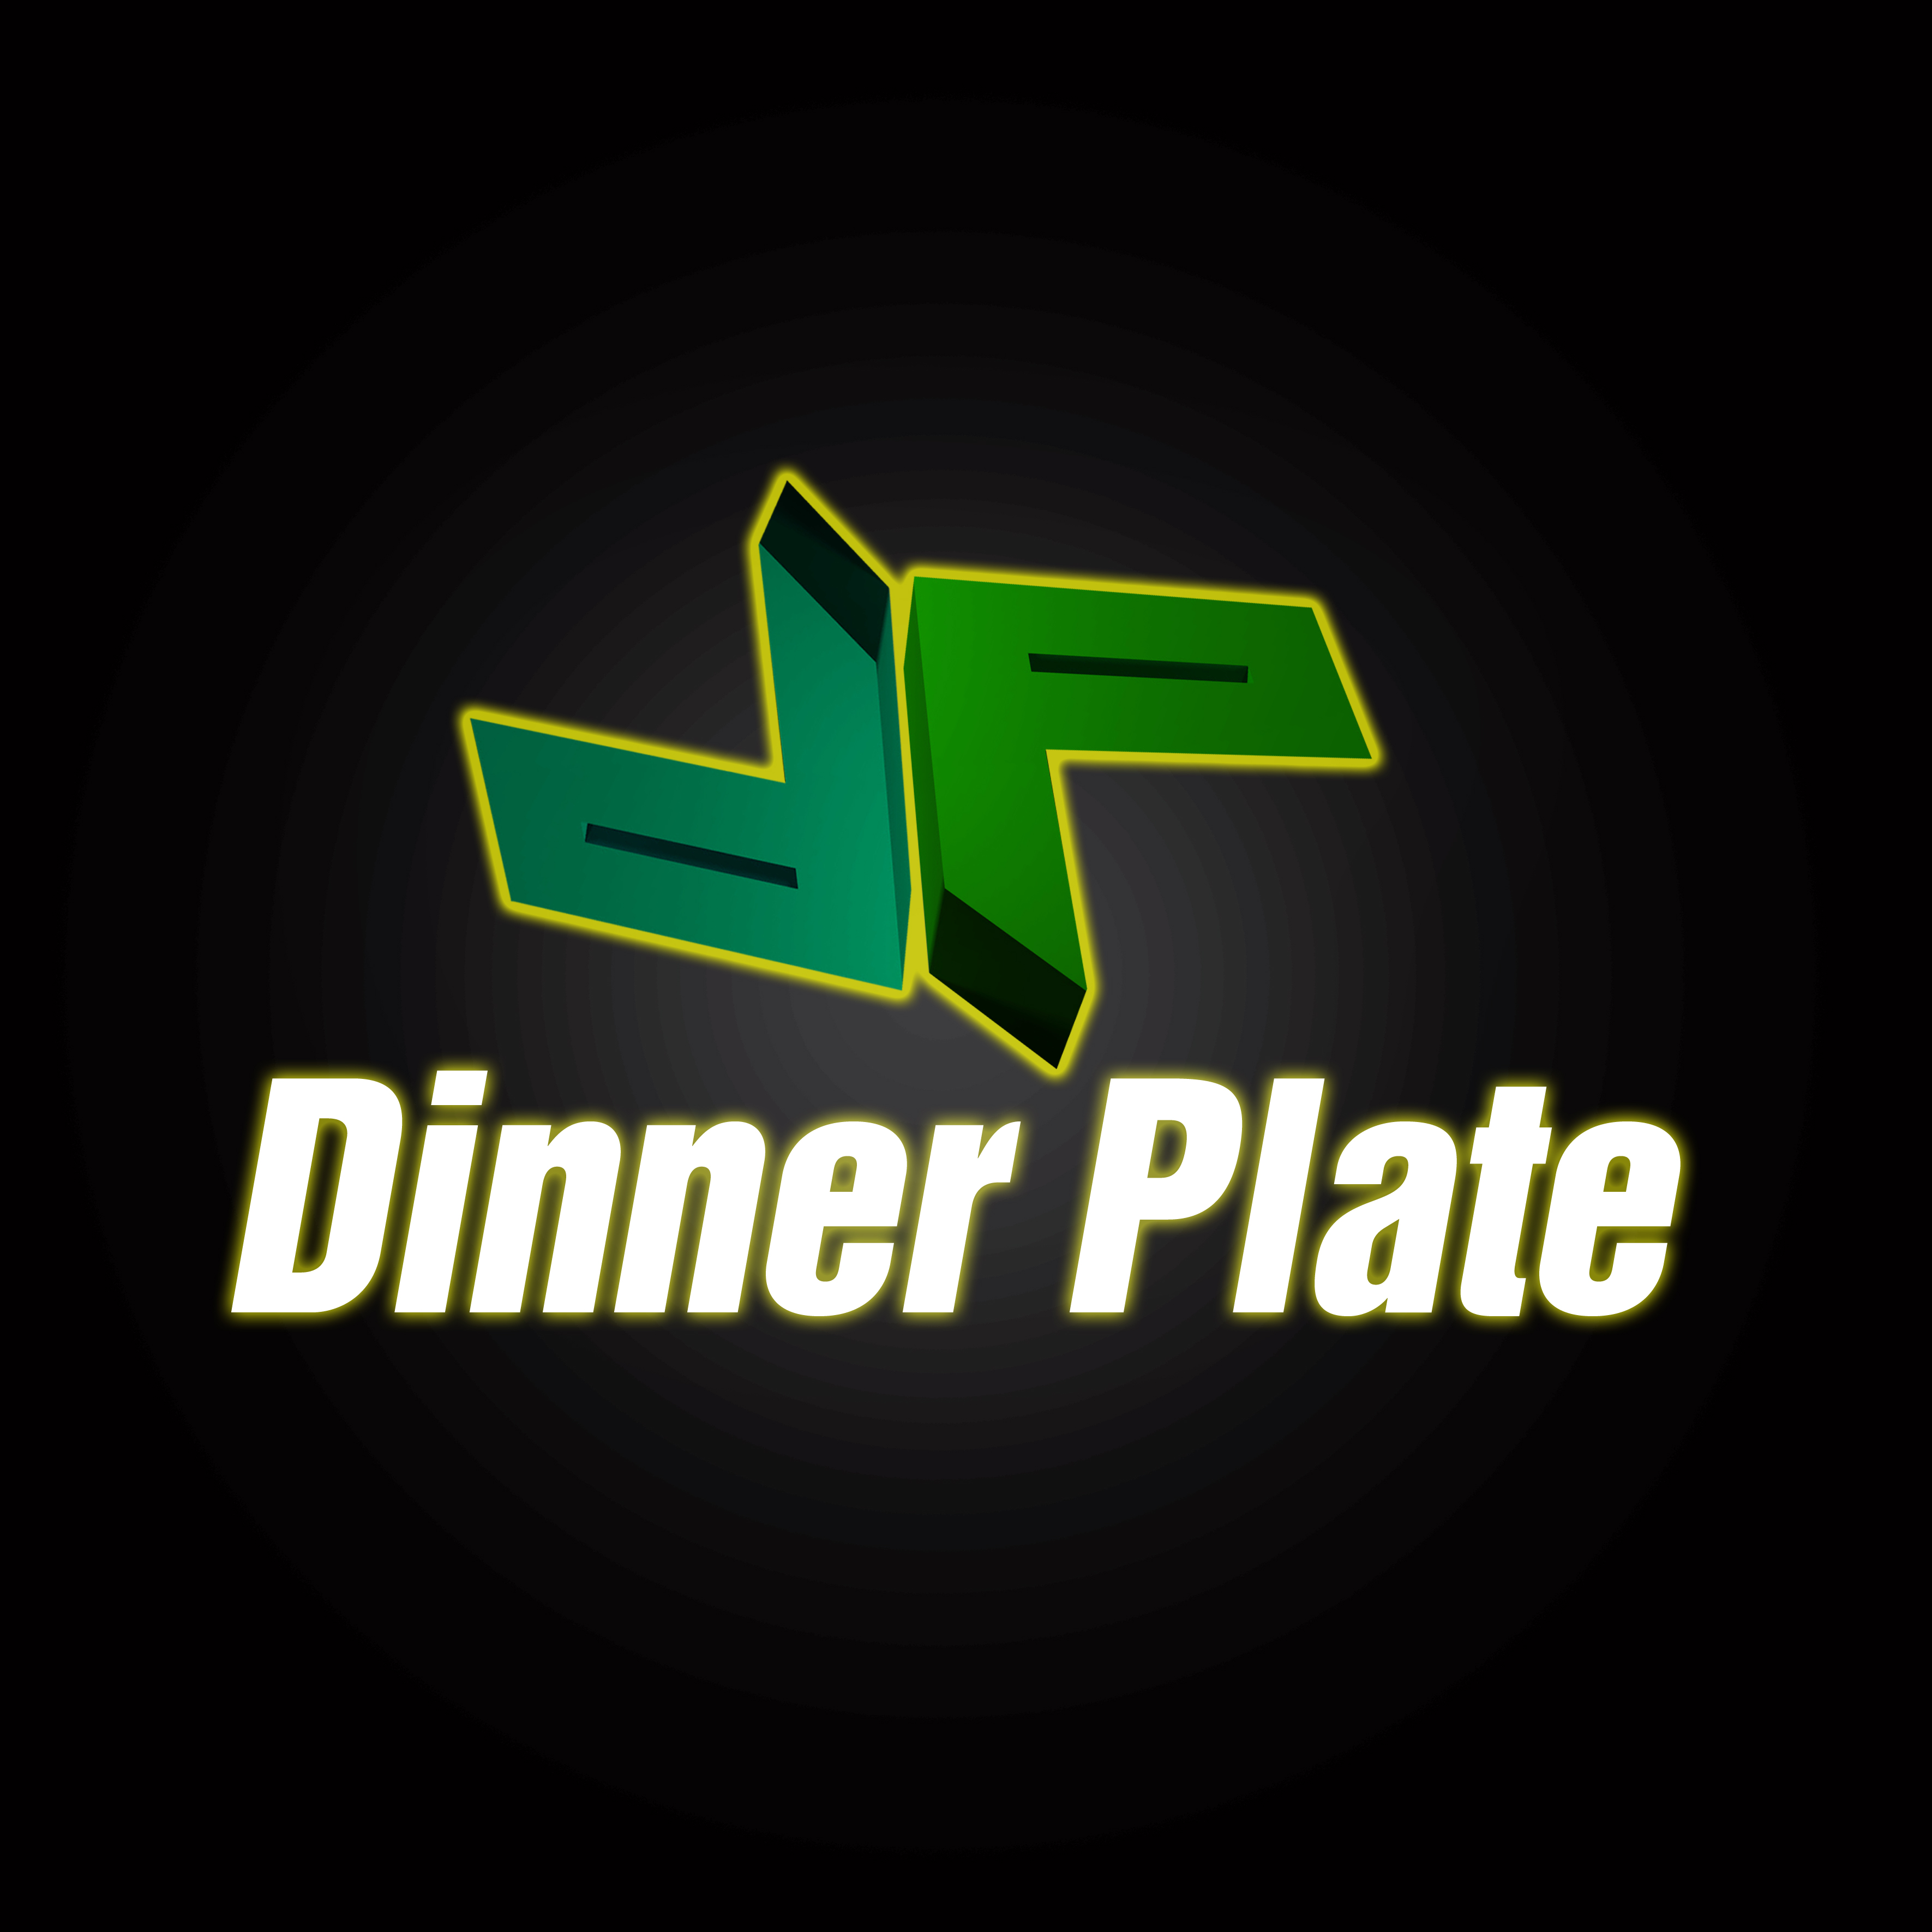 Logo Design by Roberto Sibbaluca - Entry No. 61 in the Logo Design Contest Imaginative Logo Design for Dinner Plate.